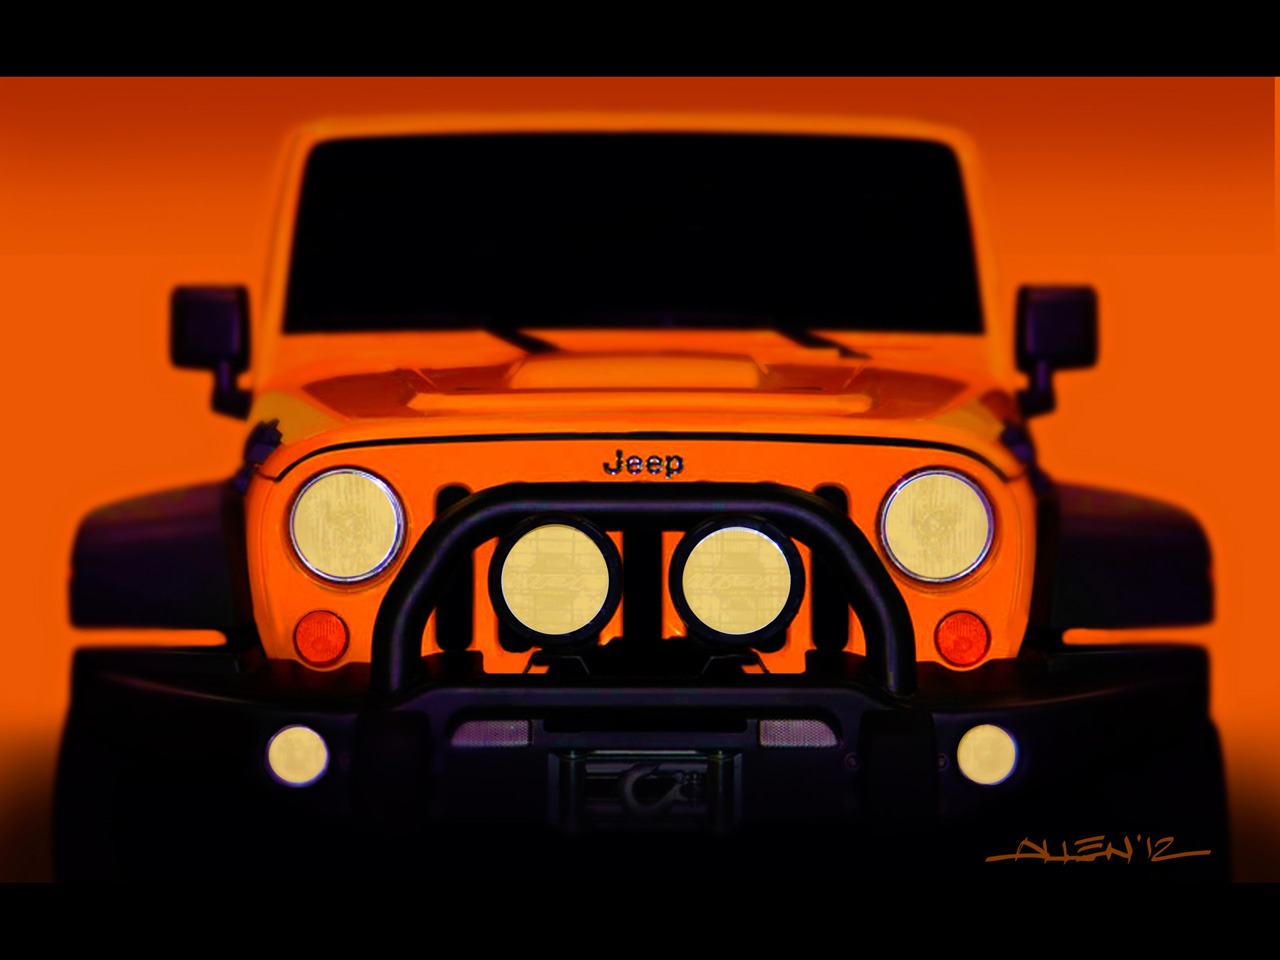 Cool Jeep Logo Wallpaper Images Pictures   Becuo 1280x960